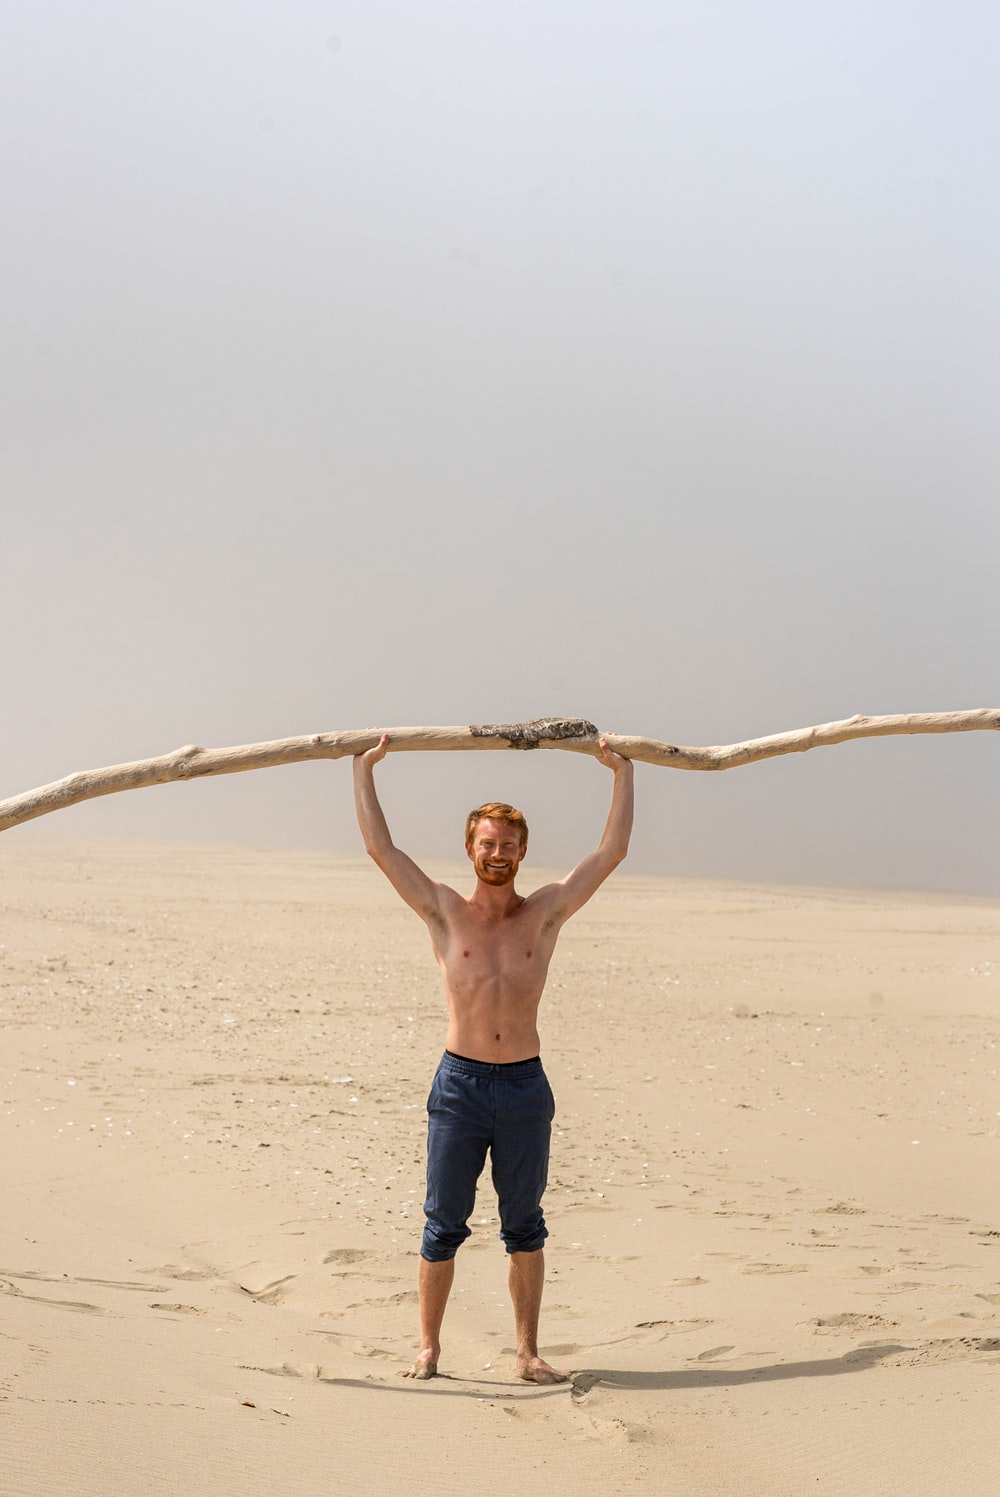 topless man in black shorts standing on brown sand during daytime